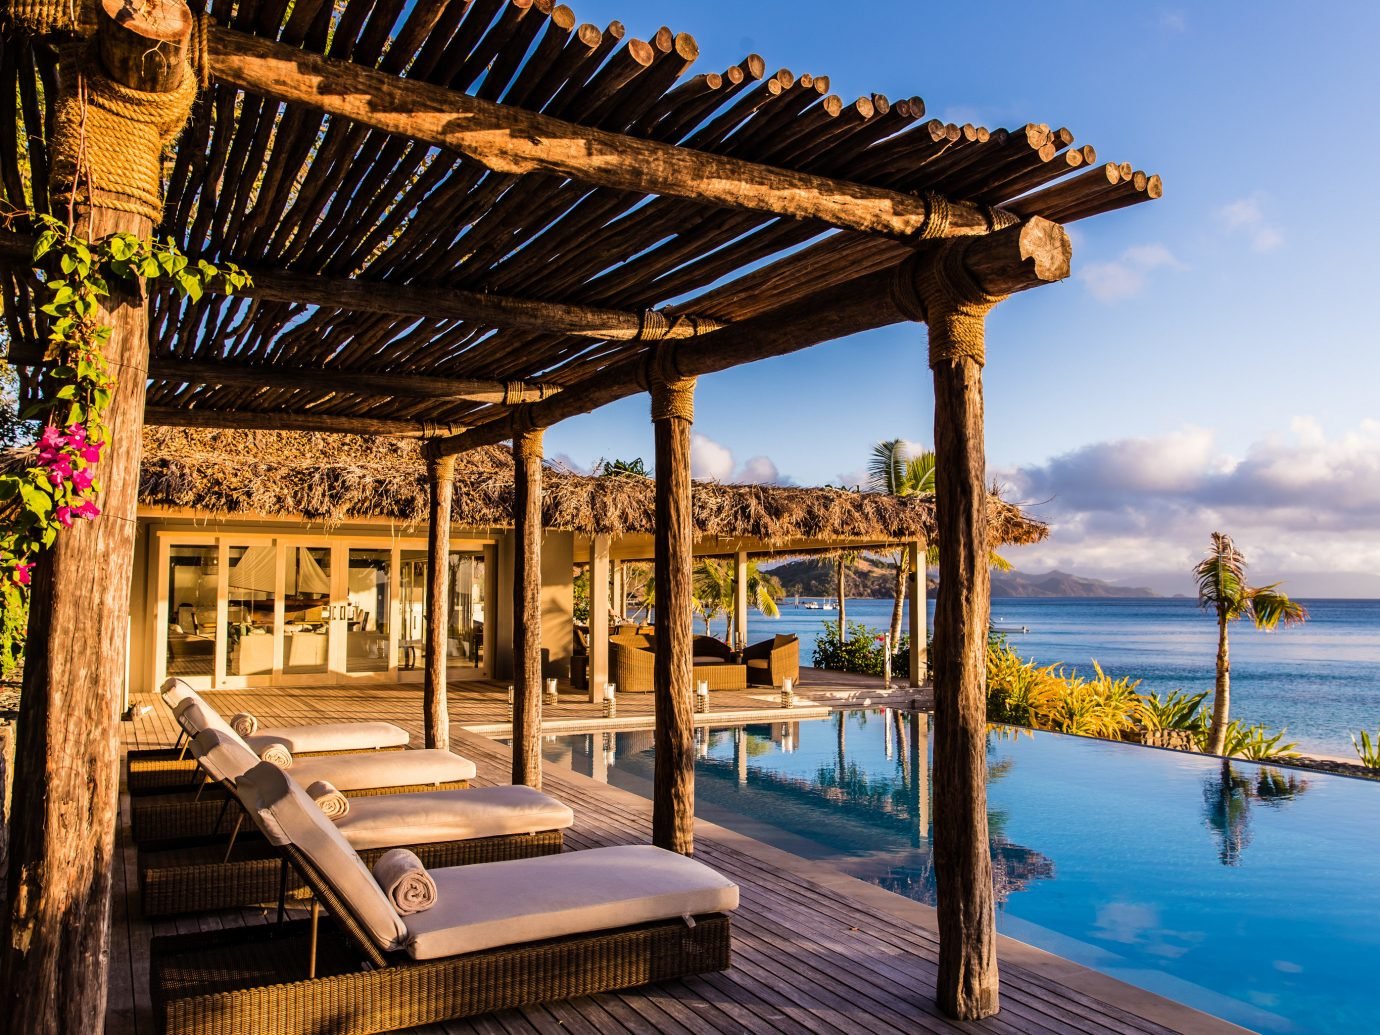 All-Inclusive Resorts Hotels Luxury Travel sky outdoor Resort property real estate leisure estate vacation outdoor structure arecales Villa swimming pool palm tree home cottage eco hotel tropics hacienda overlooking